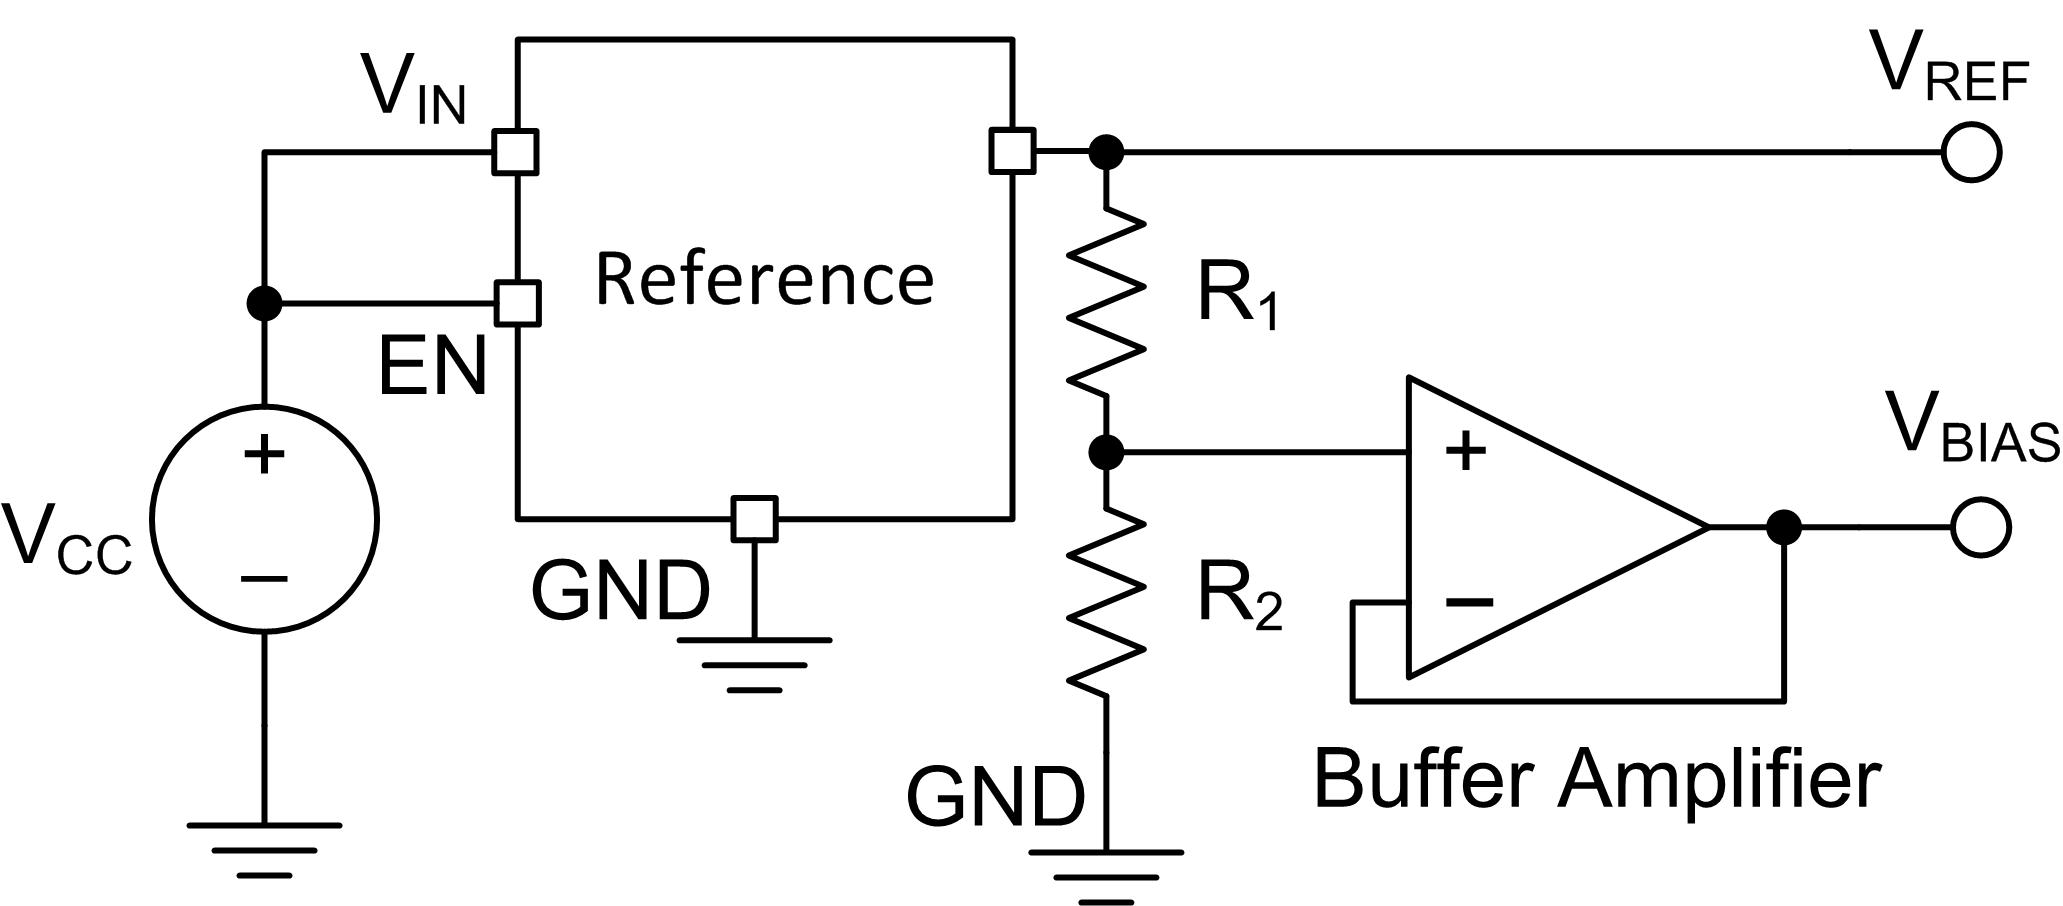 Resistor Divider Drift When 5ppm 5 Ppm Precision Hub Simple Voltage Circuit Figure 1 Depicts A Discrete Solution That Provides Reference Vref And Bias Vbias Based On The Ratio Of R1 R2